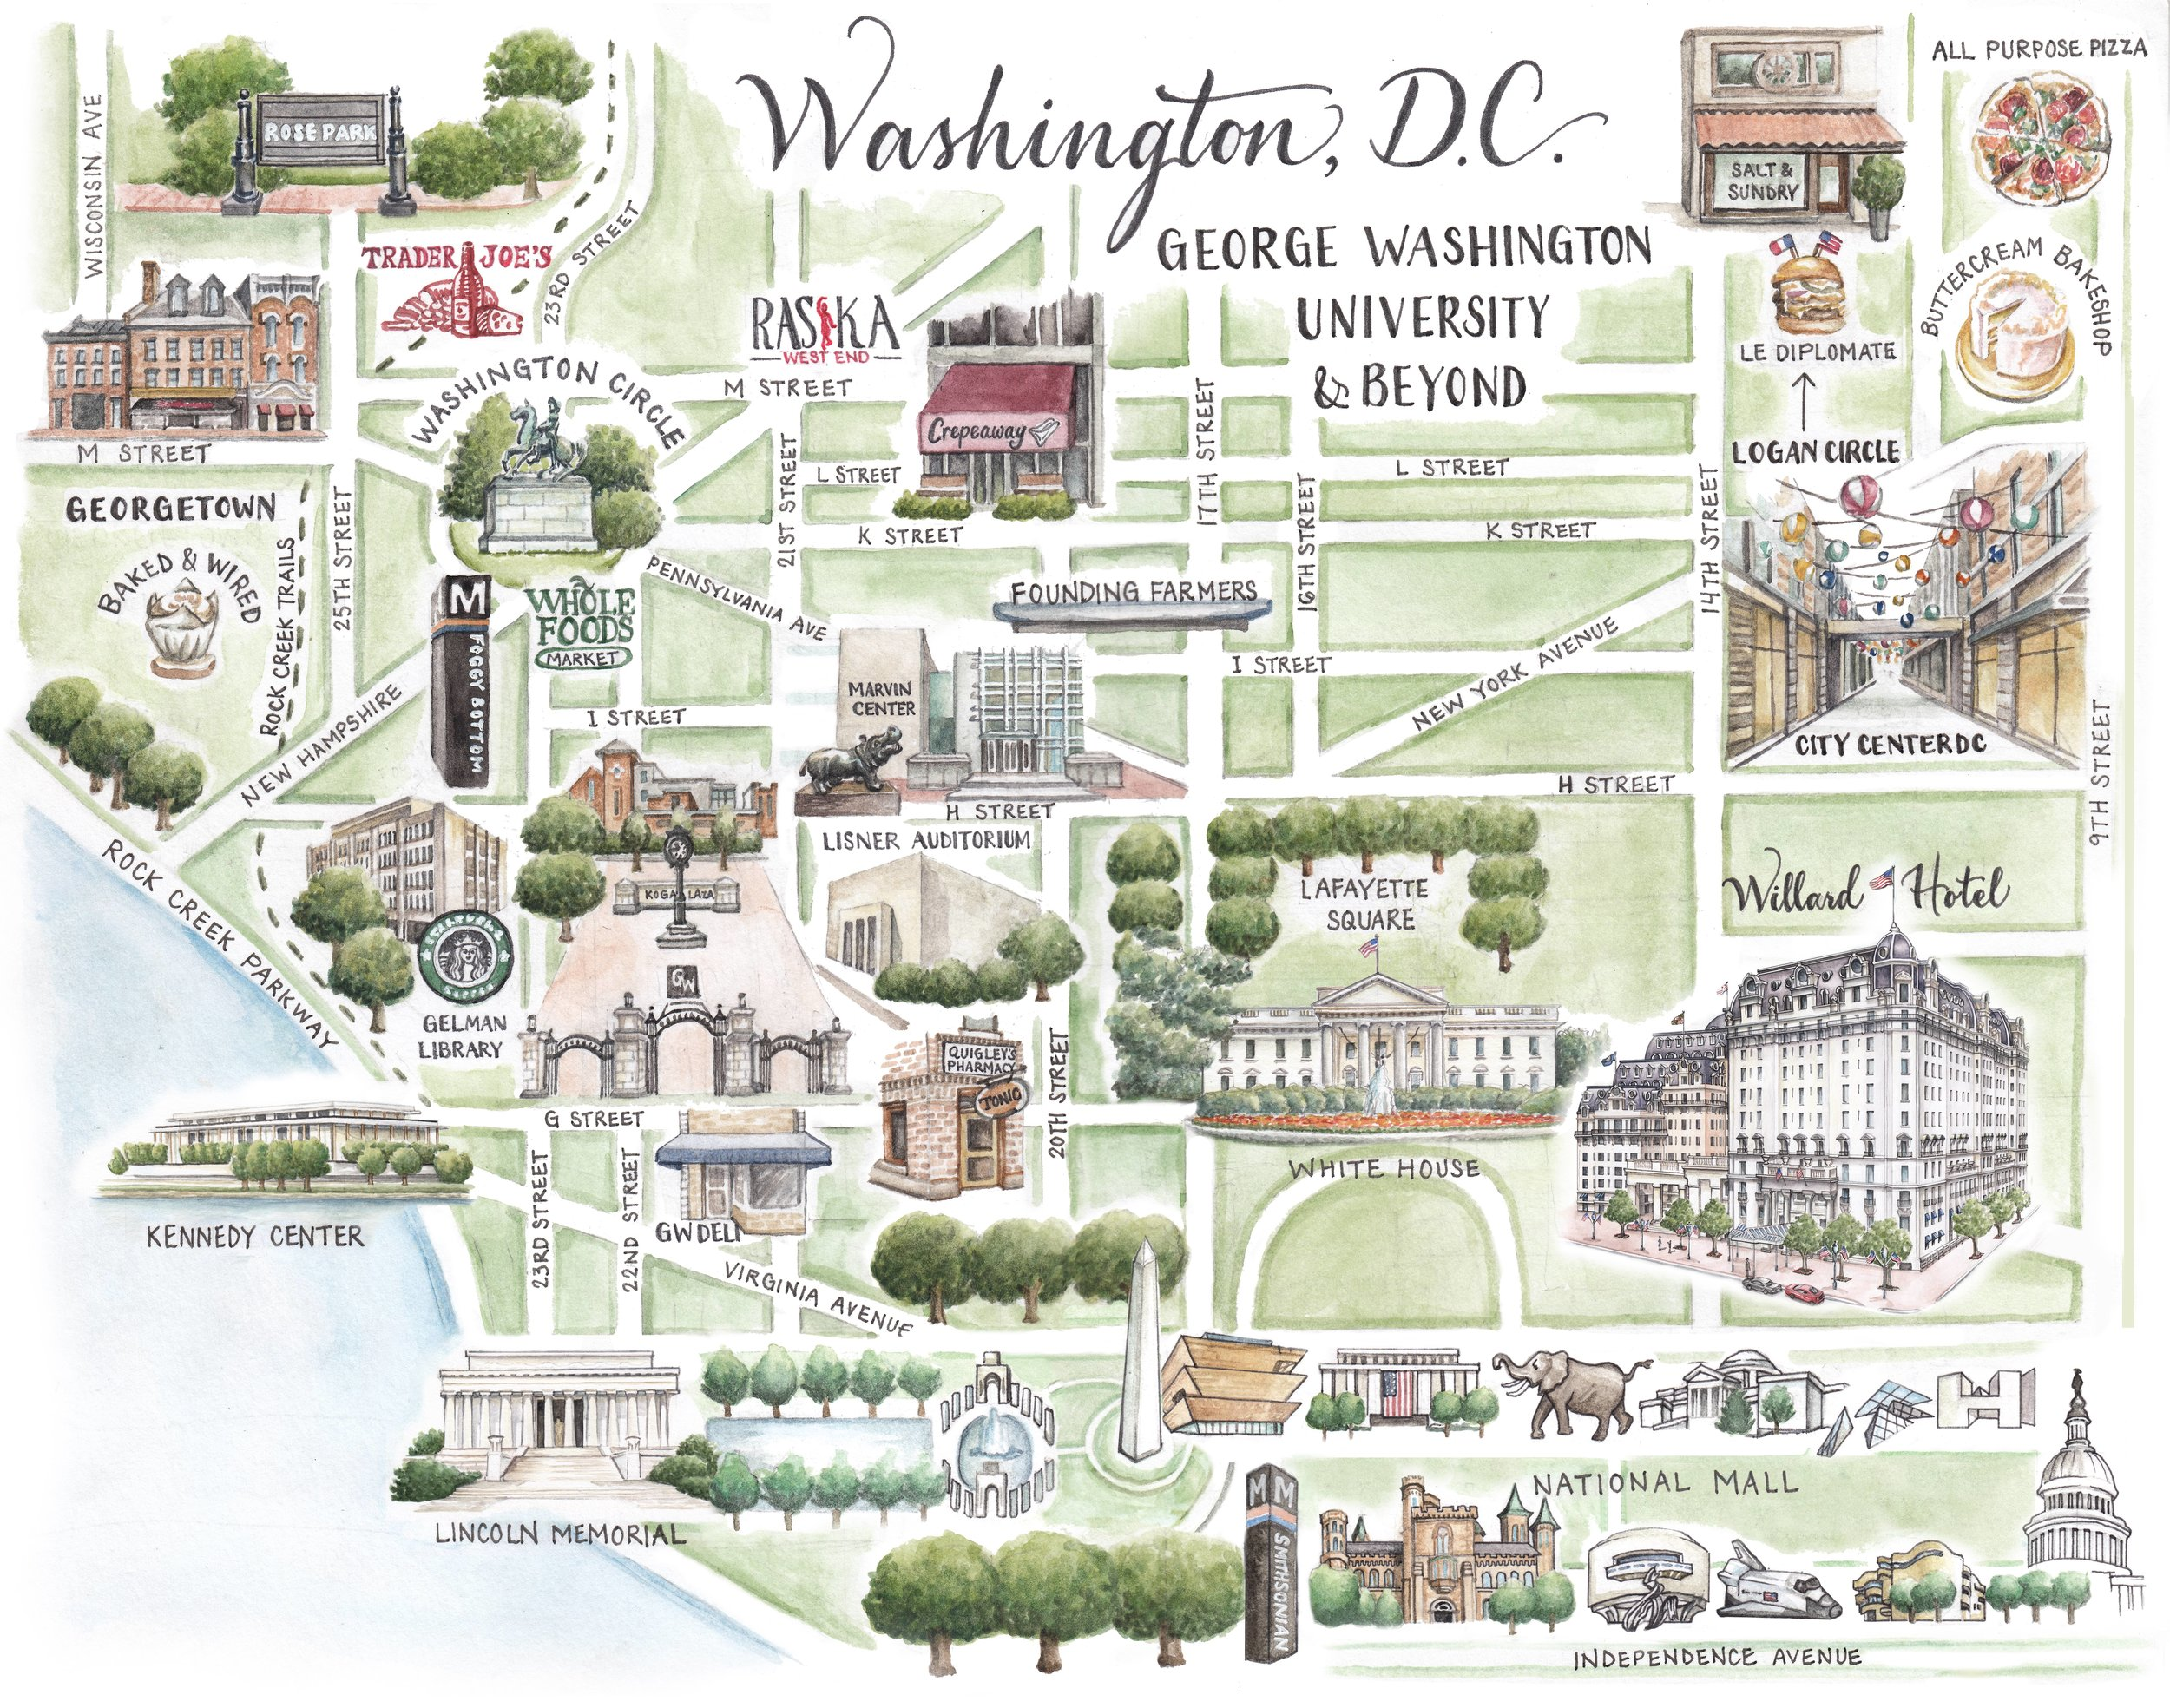 Washington DC Map - George Washington University and Beyond — Serena on dc future land use map, dc streetcar map, dc ghetto streets, dc race map, southeast dc map, city center dc map, dc truck route map, dc park map, dc building map, dc beltway map, dc underground map, dc loop map, dc topo map, dc bicycle map, dc hill map, dc food map, dc zip map, dc postal code map, dc road map, dc suburb map,